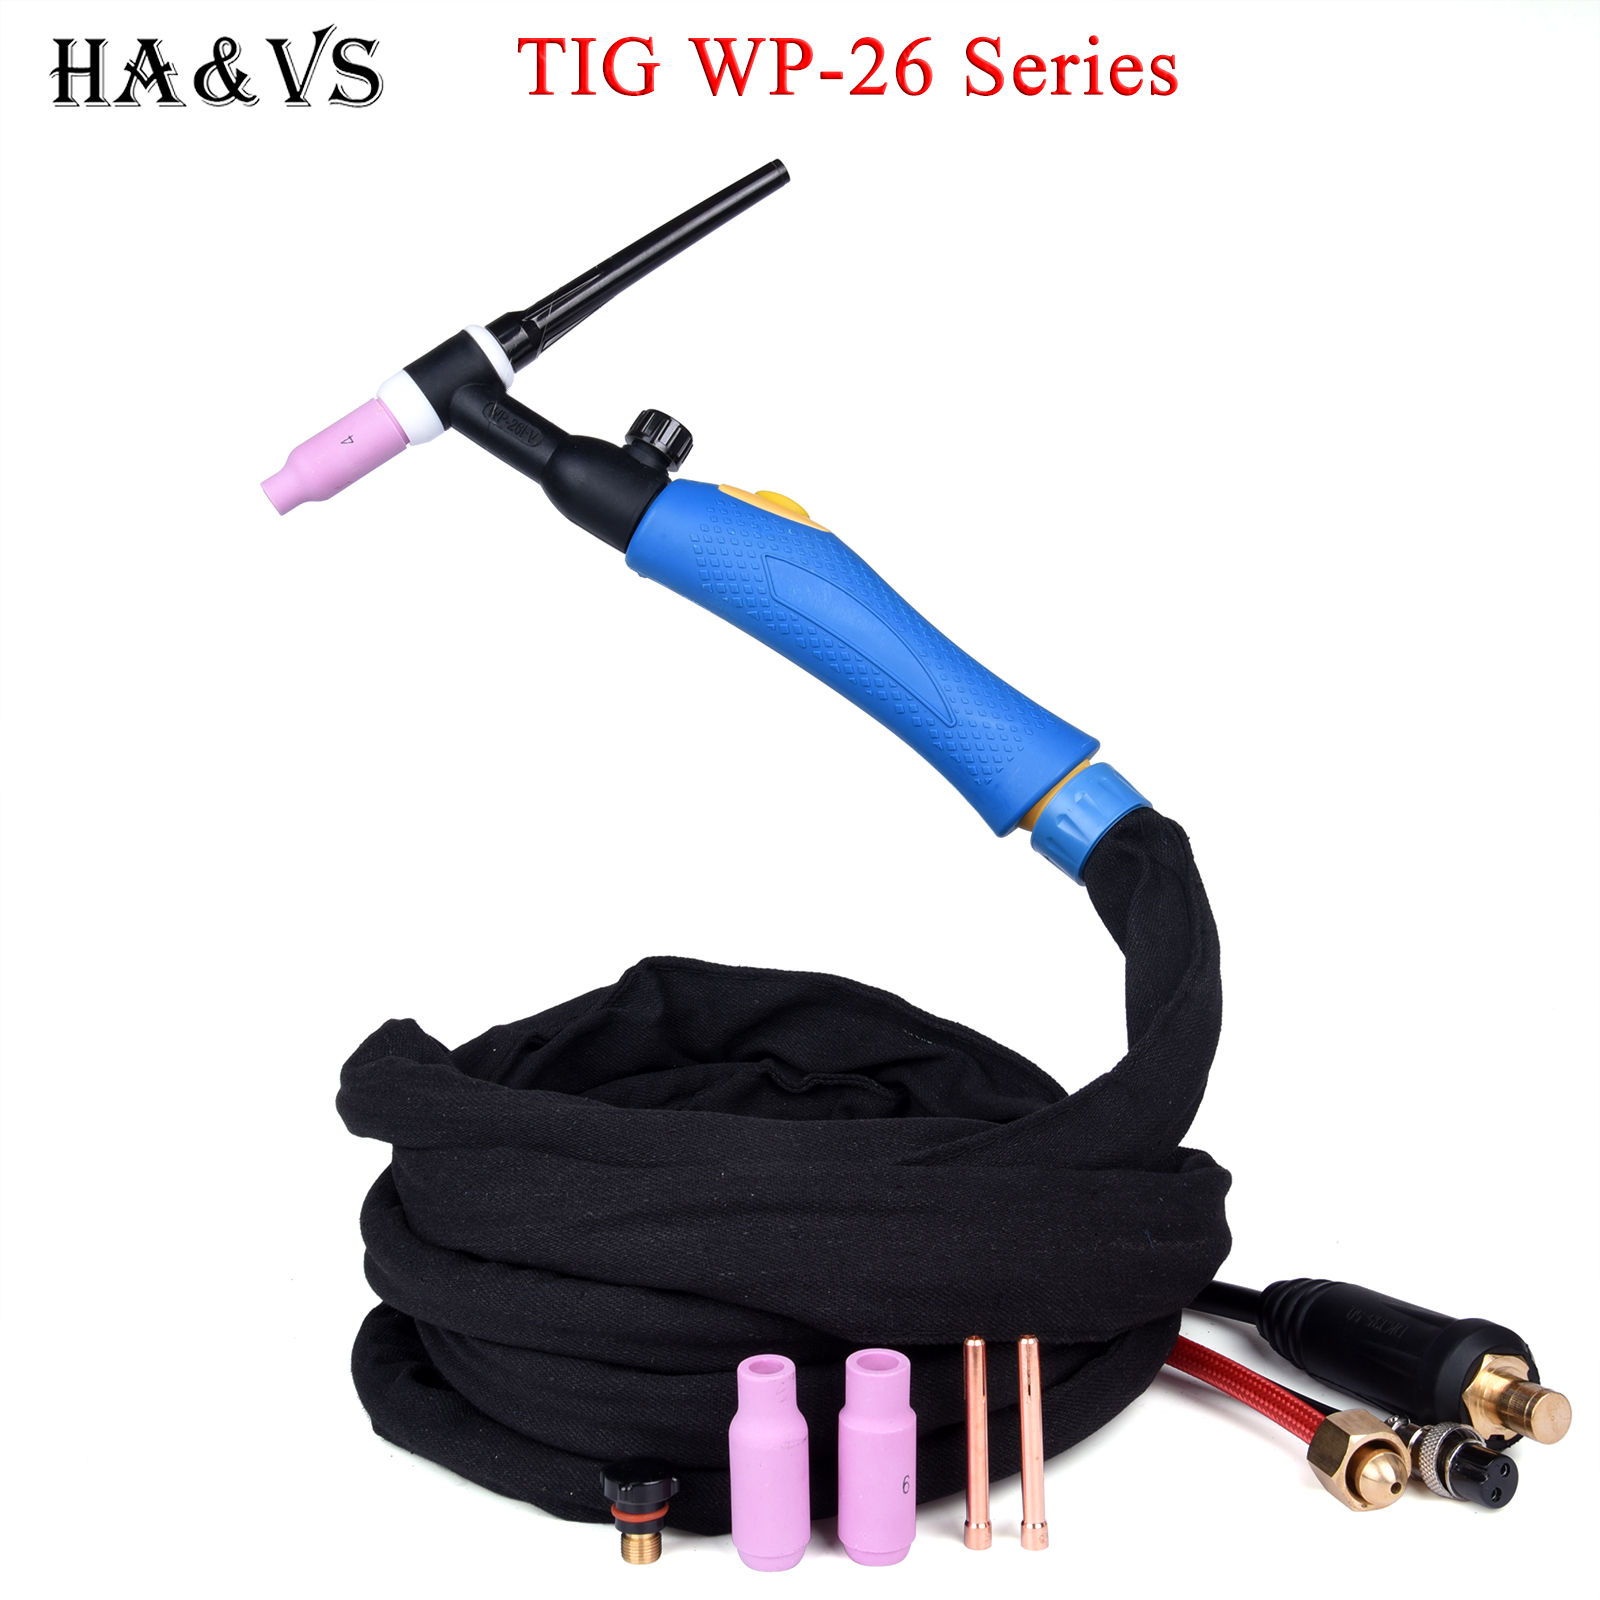 WP26 WP26FV TIG Welding Torch Gas Tungsten Arc Weld TIG Flexible Head Gas Valve Separated Type 3 7M 35-50 Euro Connector 12 1Ft